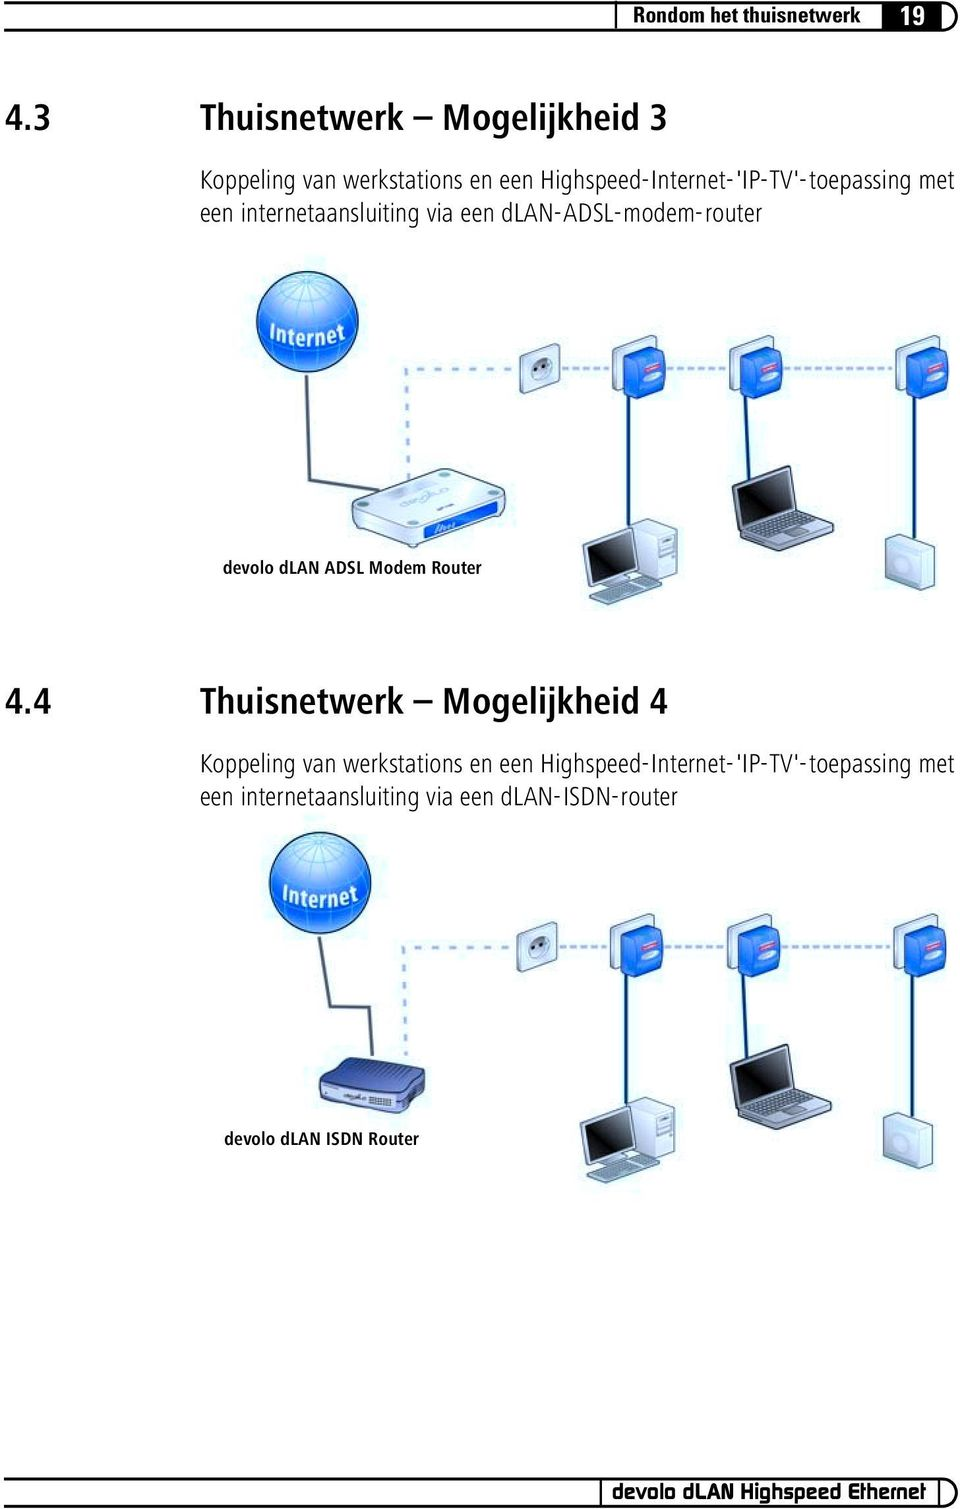 Highspeed-Internet-'IP-TV'-toepassing met een internetaansluiting via een dlan-adsl-modem-router